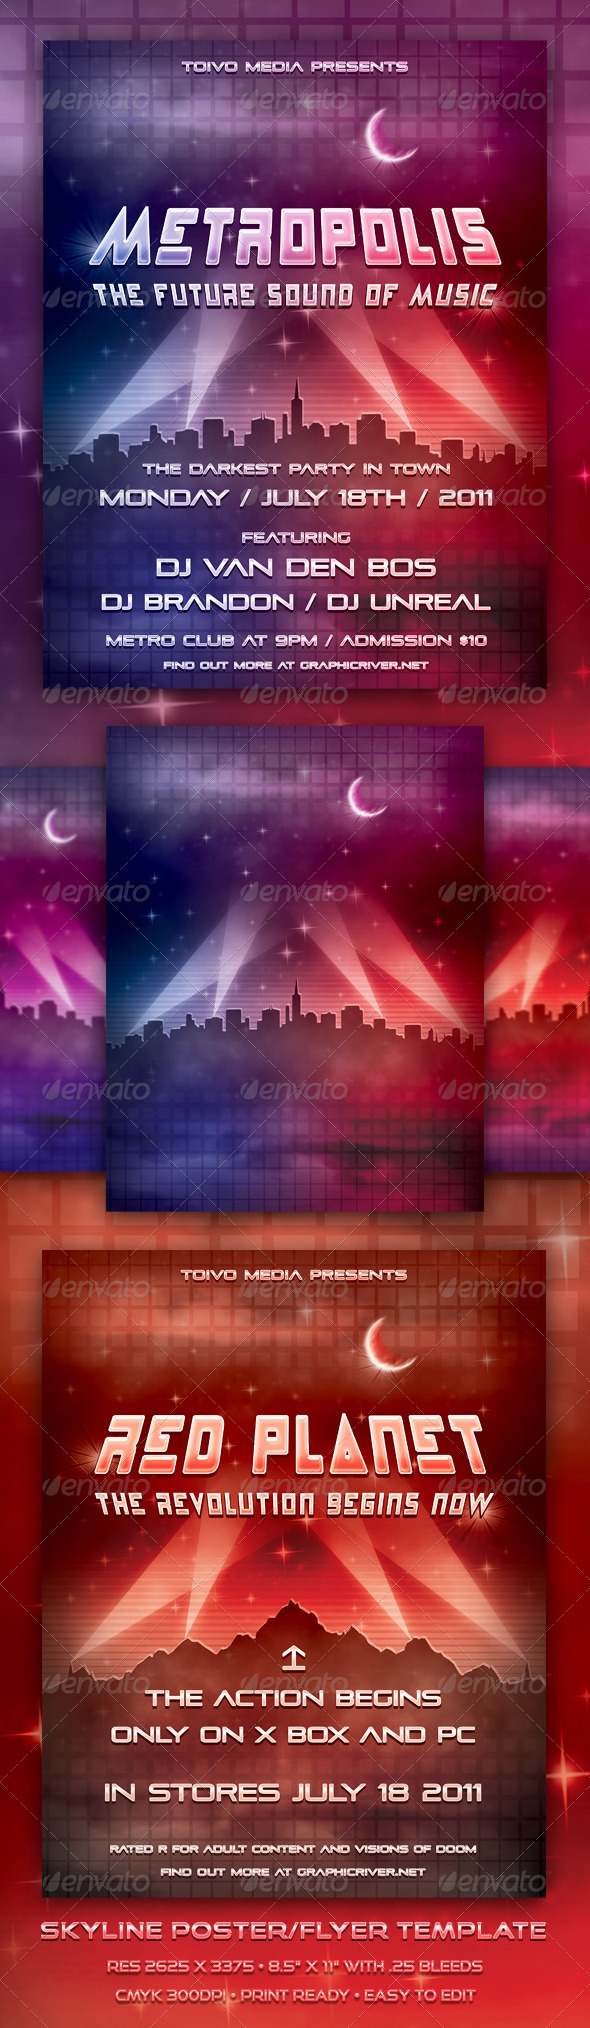 Skyline Poster/Flyer Template - Clubs & Parties Events